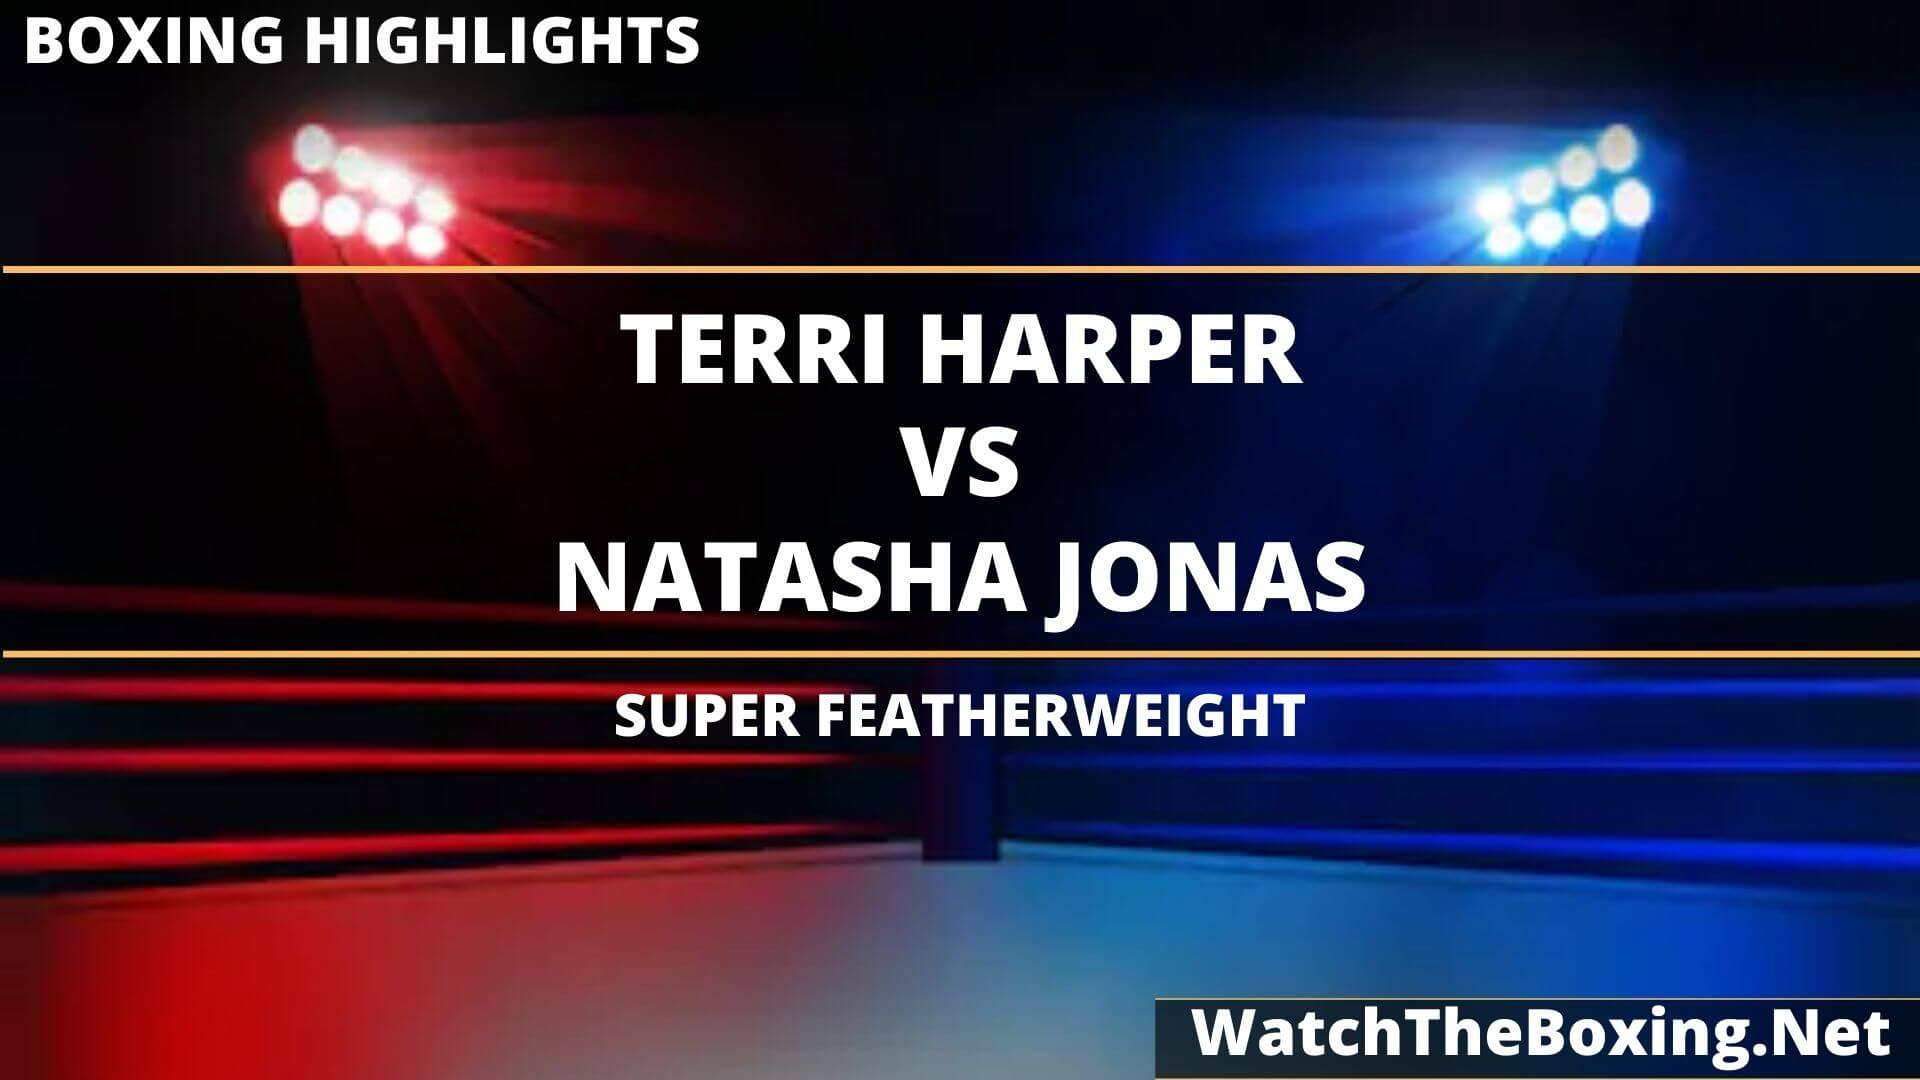 Terri Harper Vs Natasha Jonas Highlights 2020 Super Featherweight